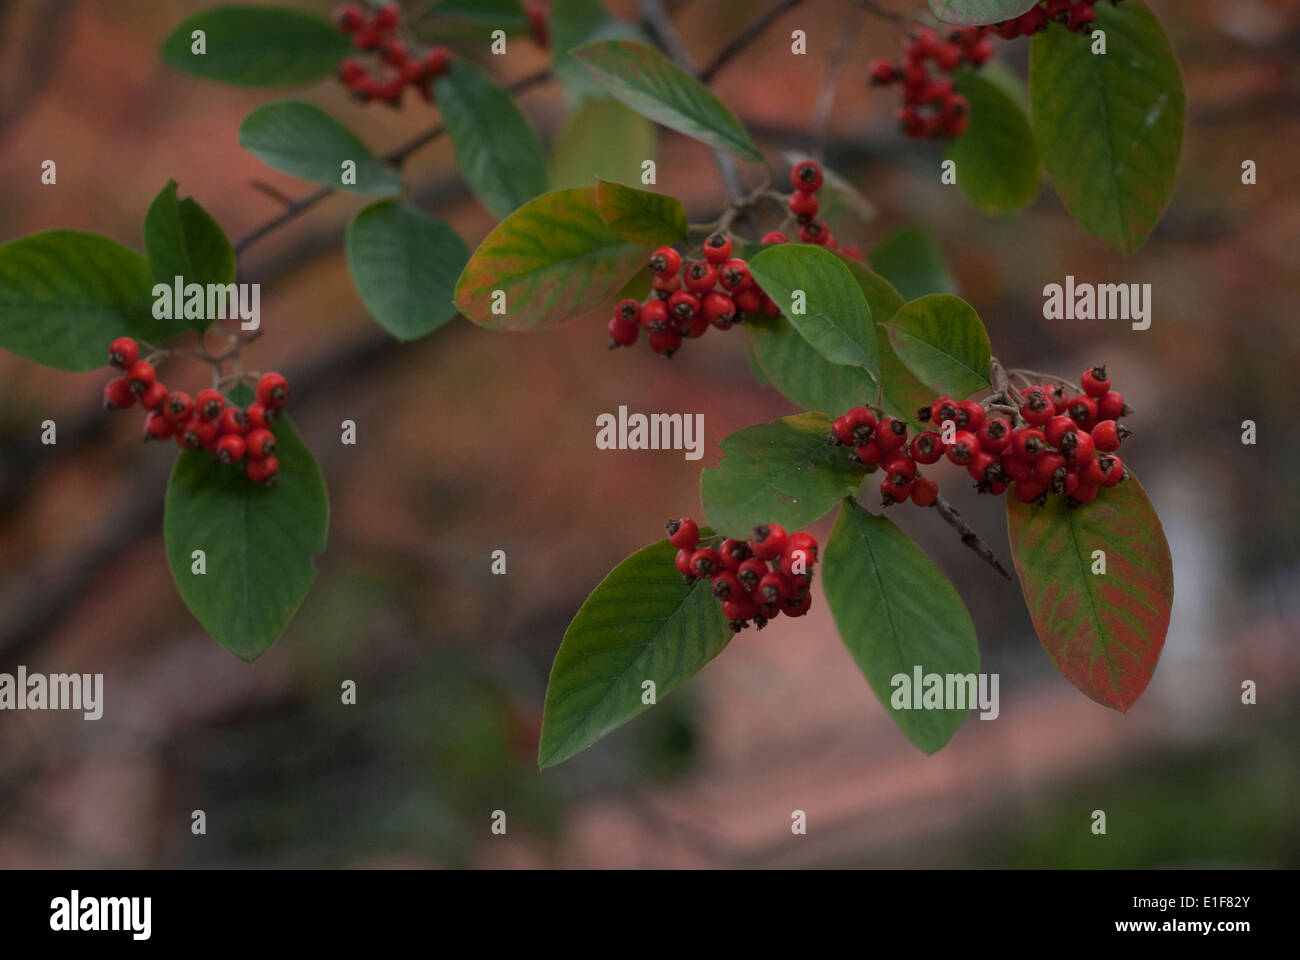 Tree Branch With Small Red Berries Stock Photo 69791763 Alamy